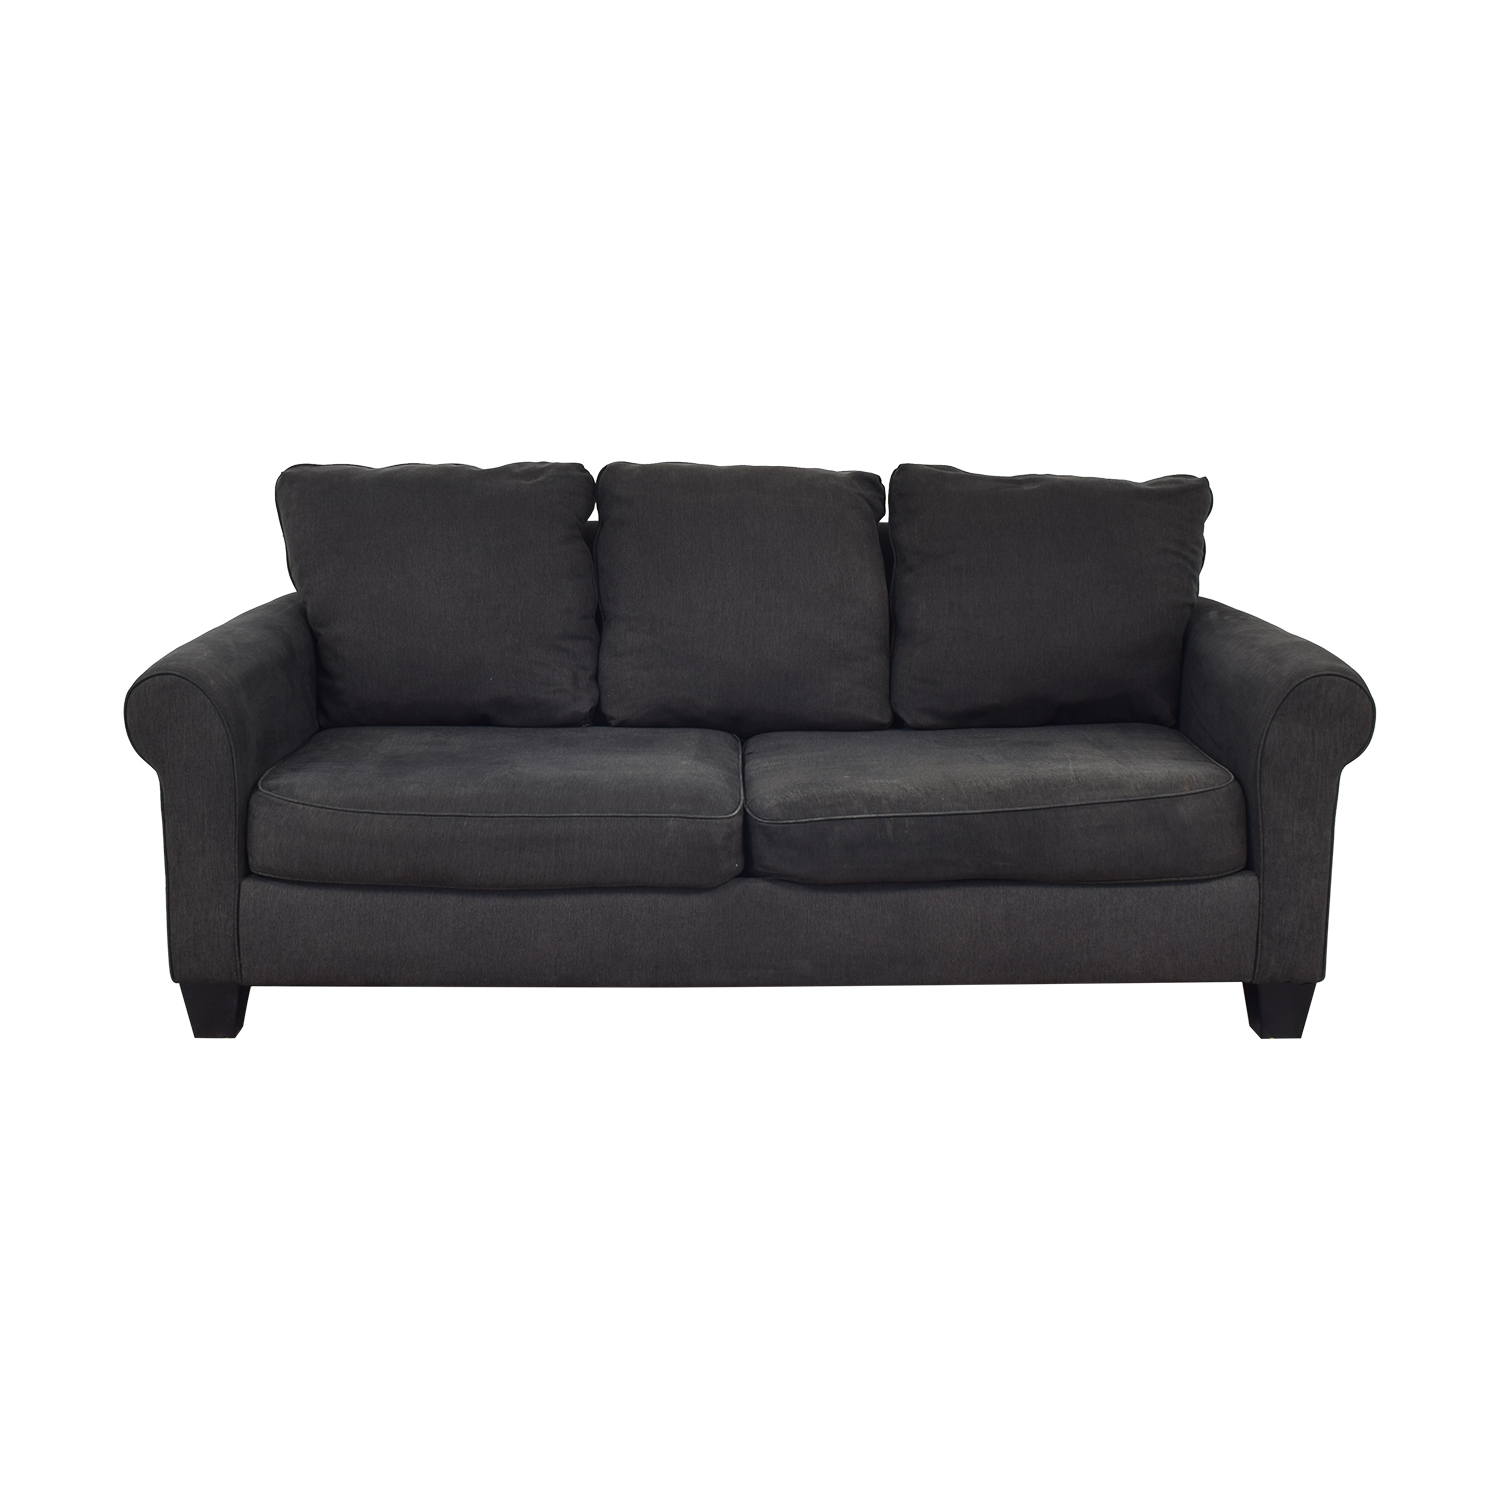 Ashley Furniture Ashley Furniture Nolana Two Seat Sofa Sofas